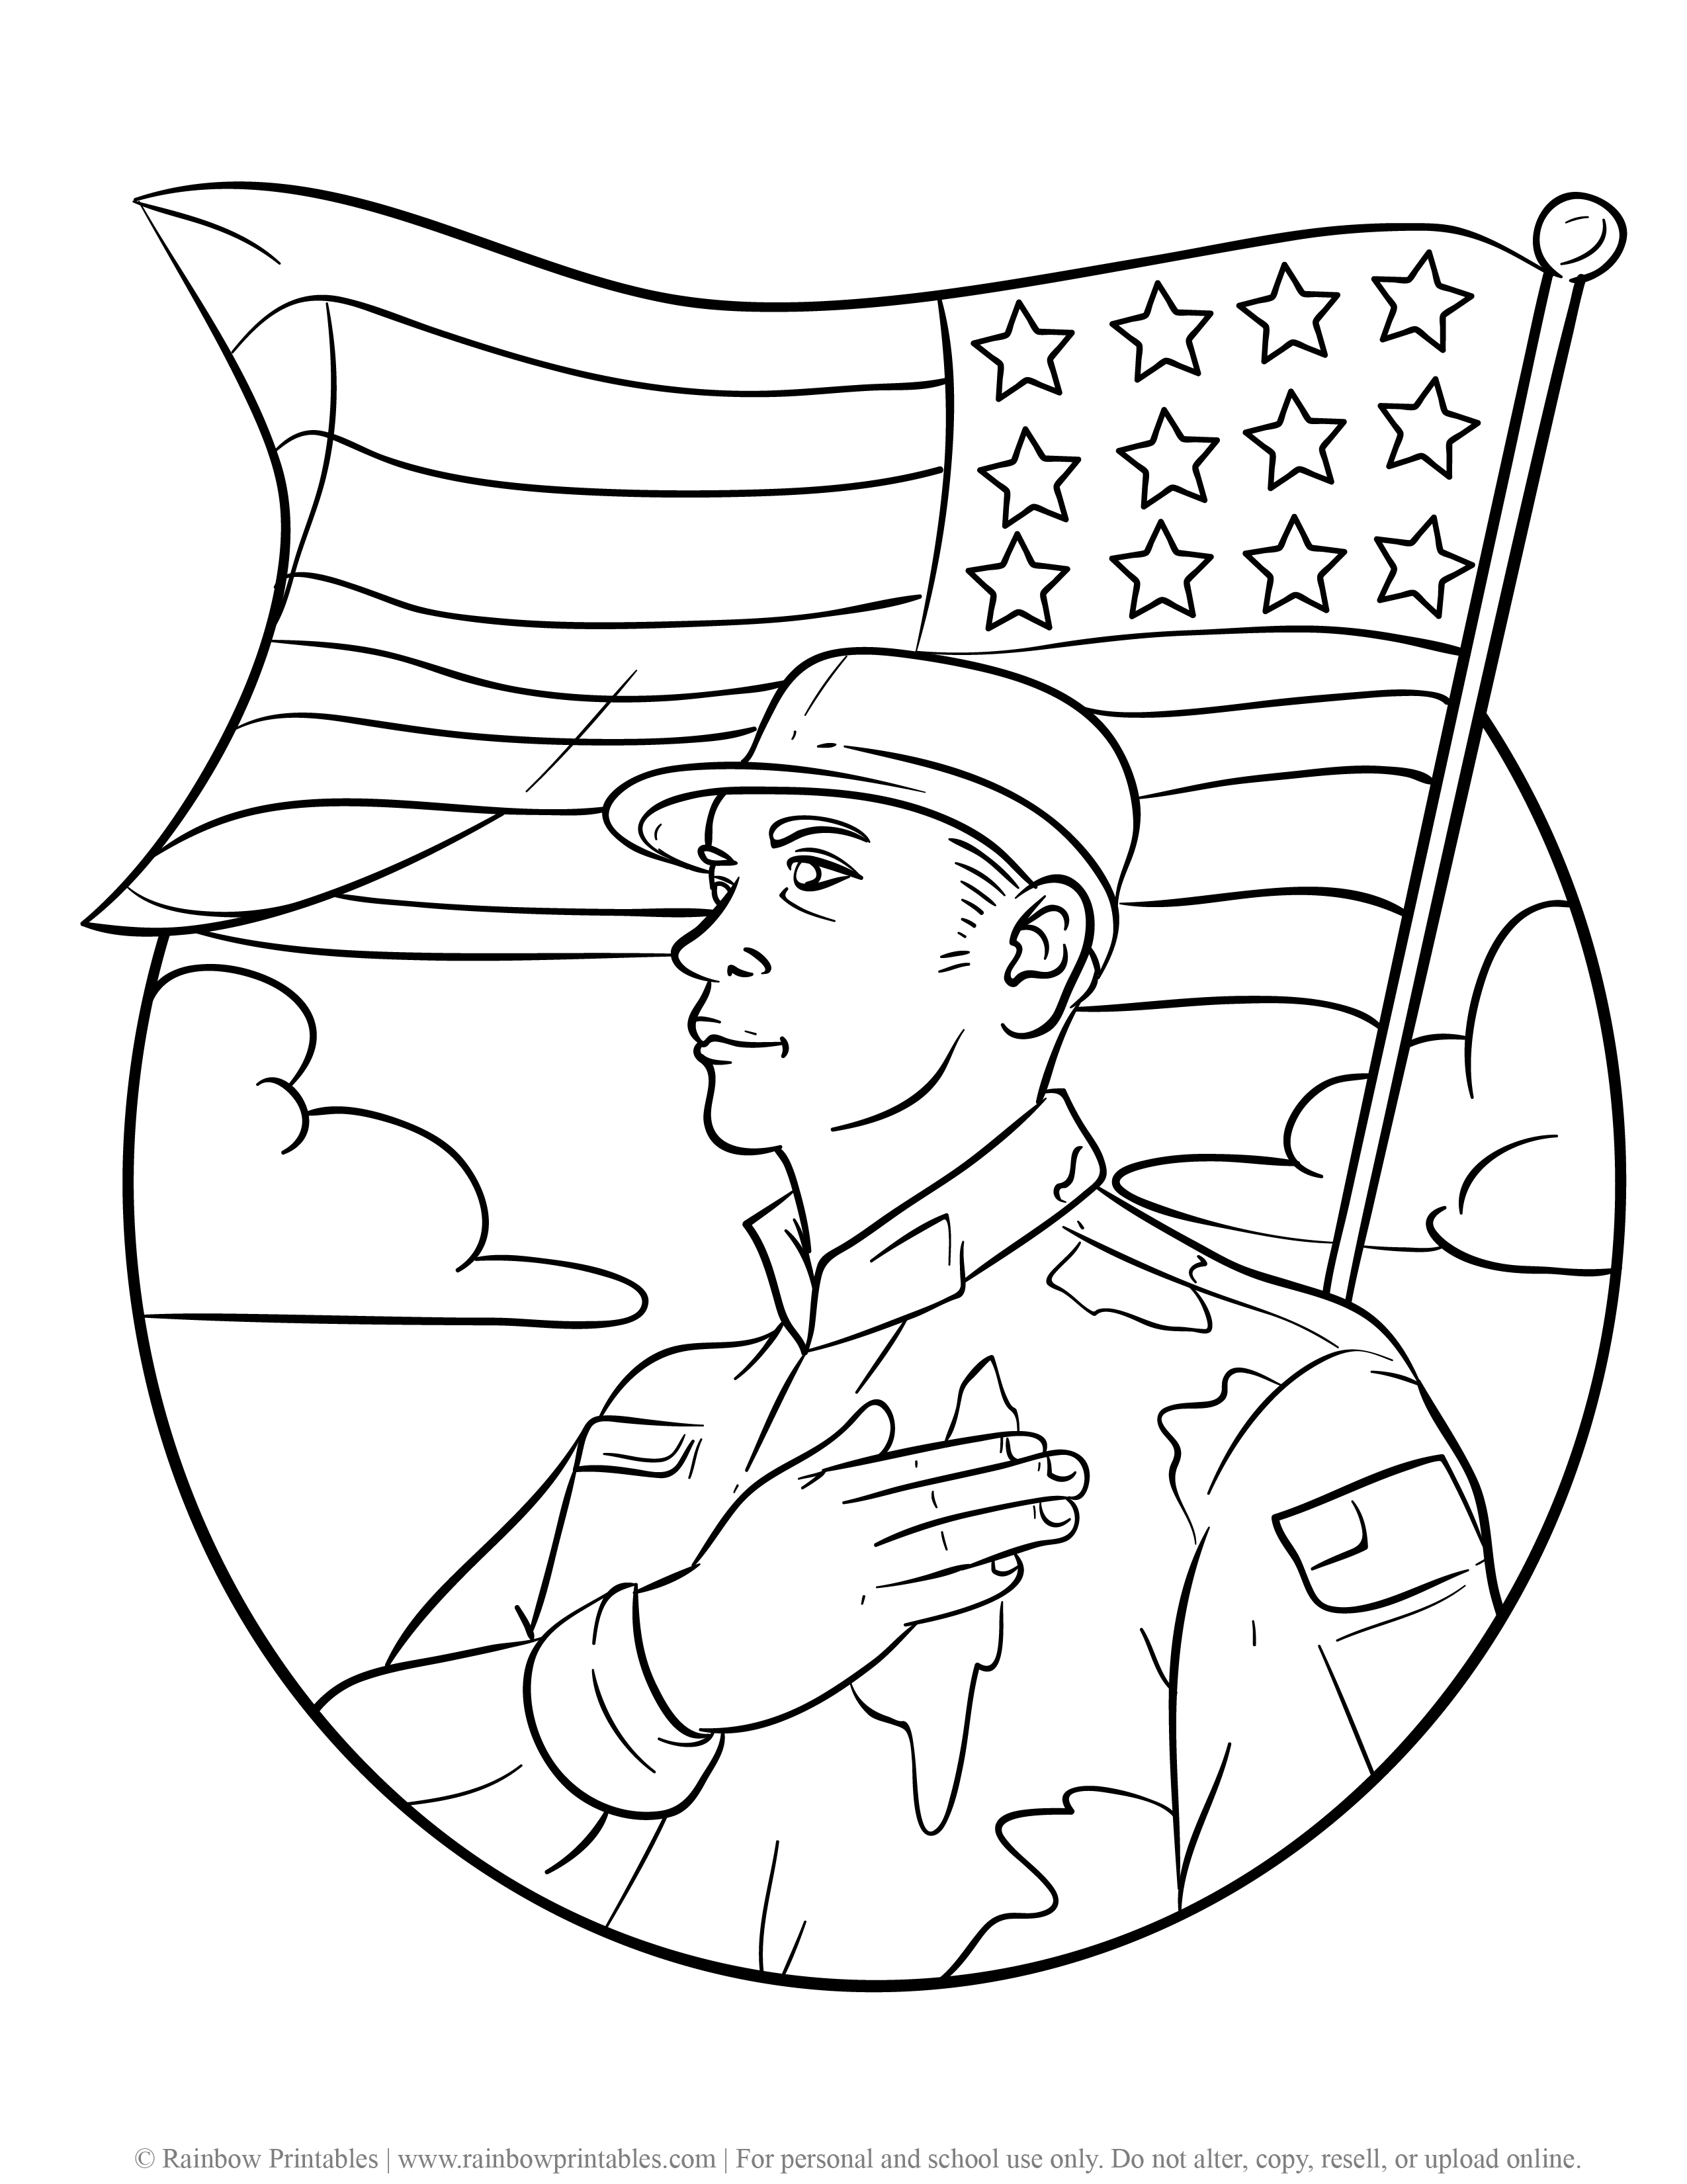 US American Soldier Army Navy Coloring Pages For Kids Patriotic July 4th Independence Day Simple Easy Coloring Printables (2)